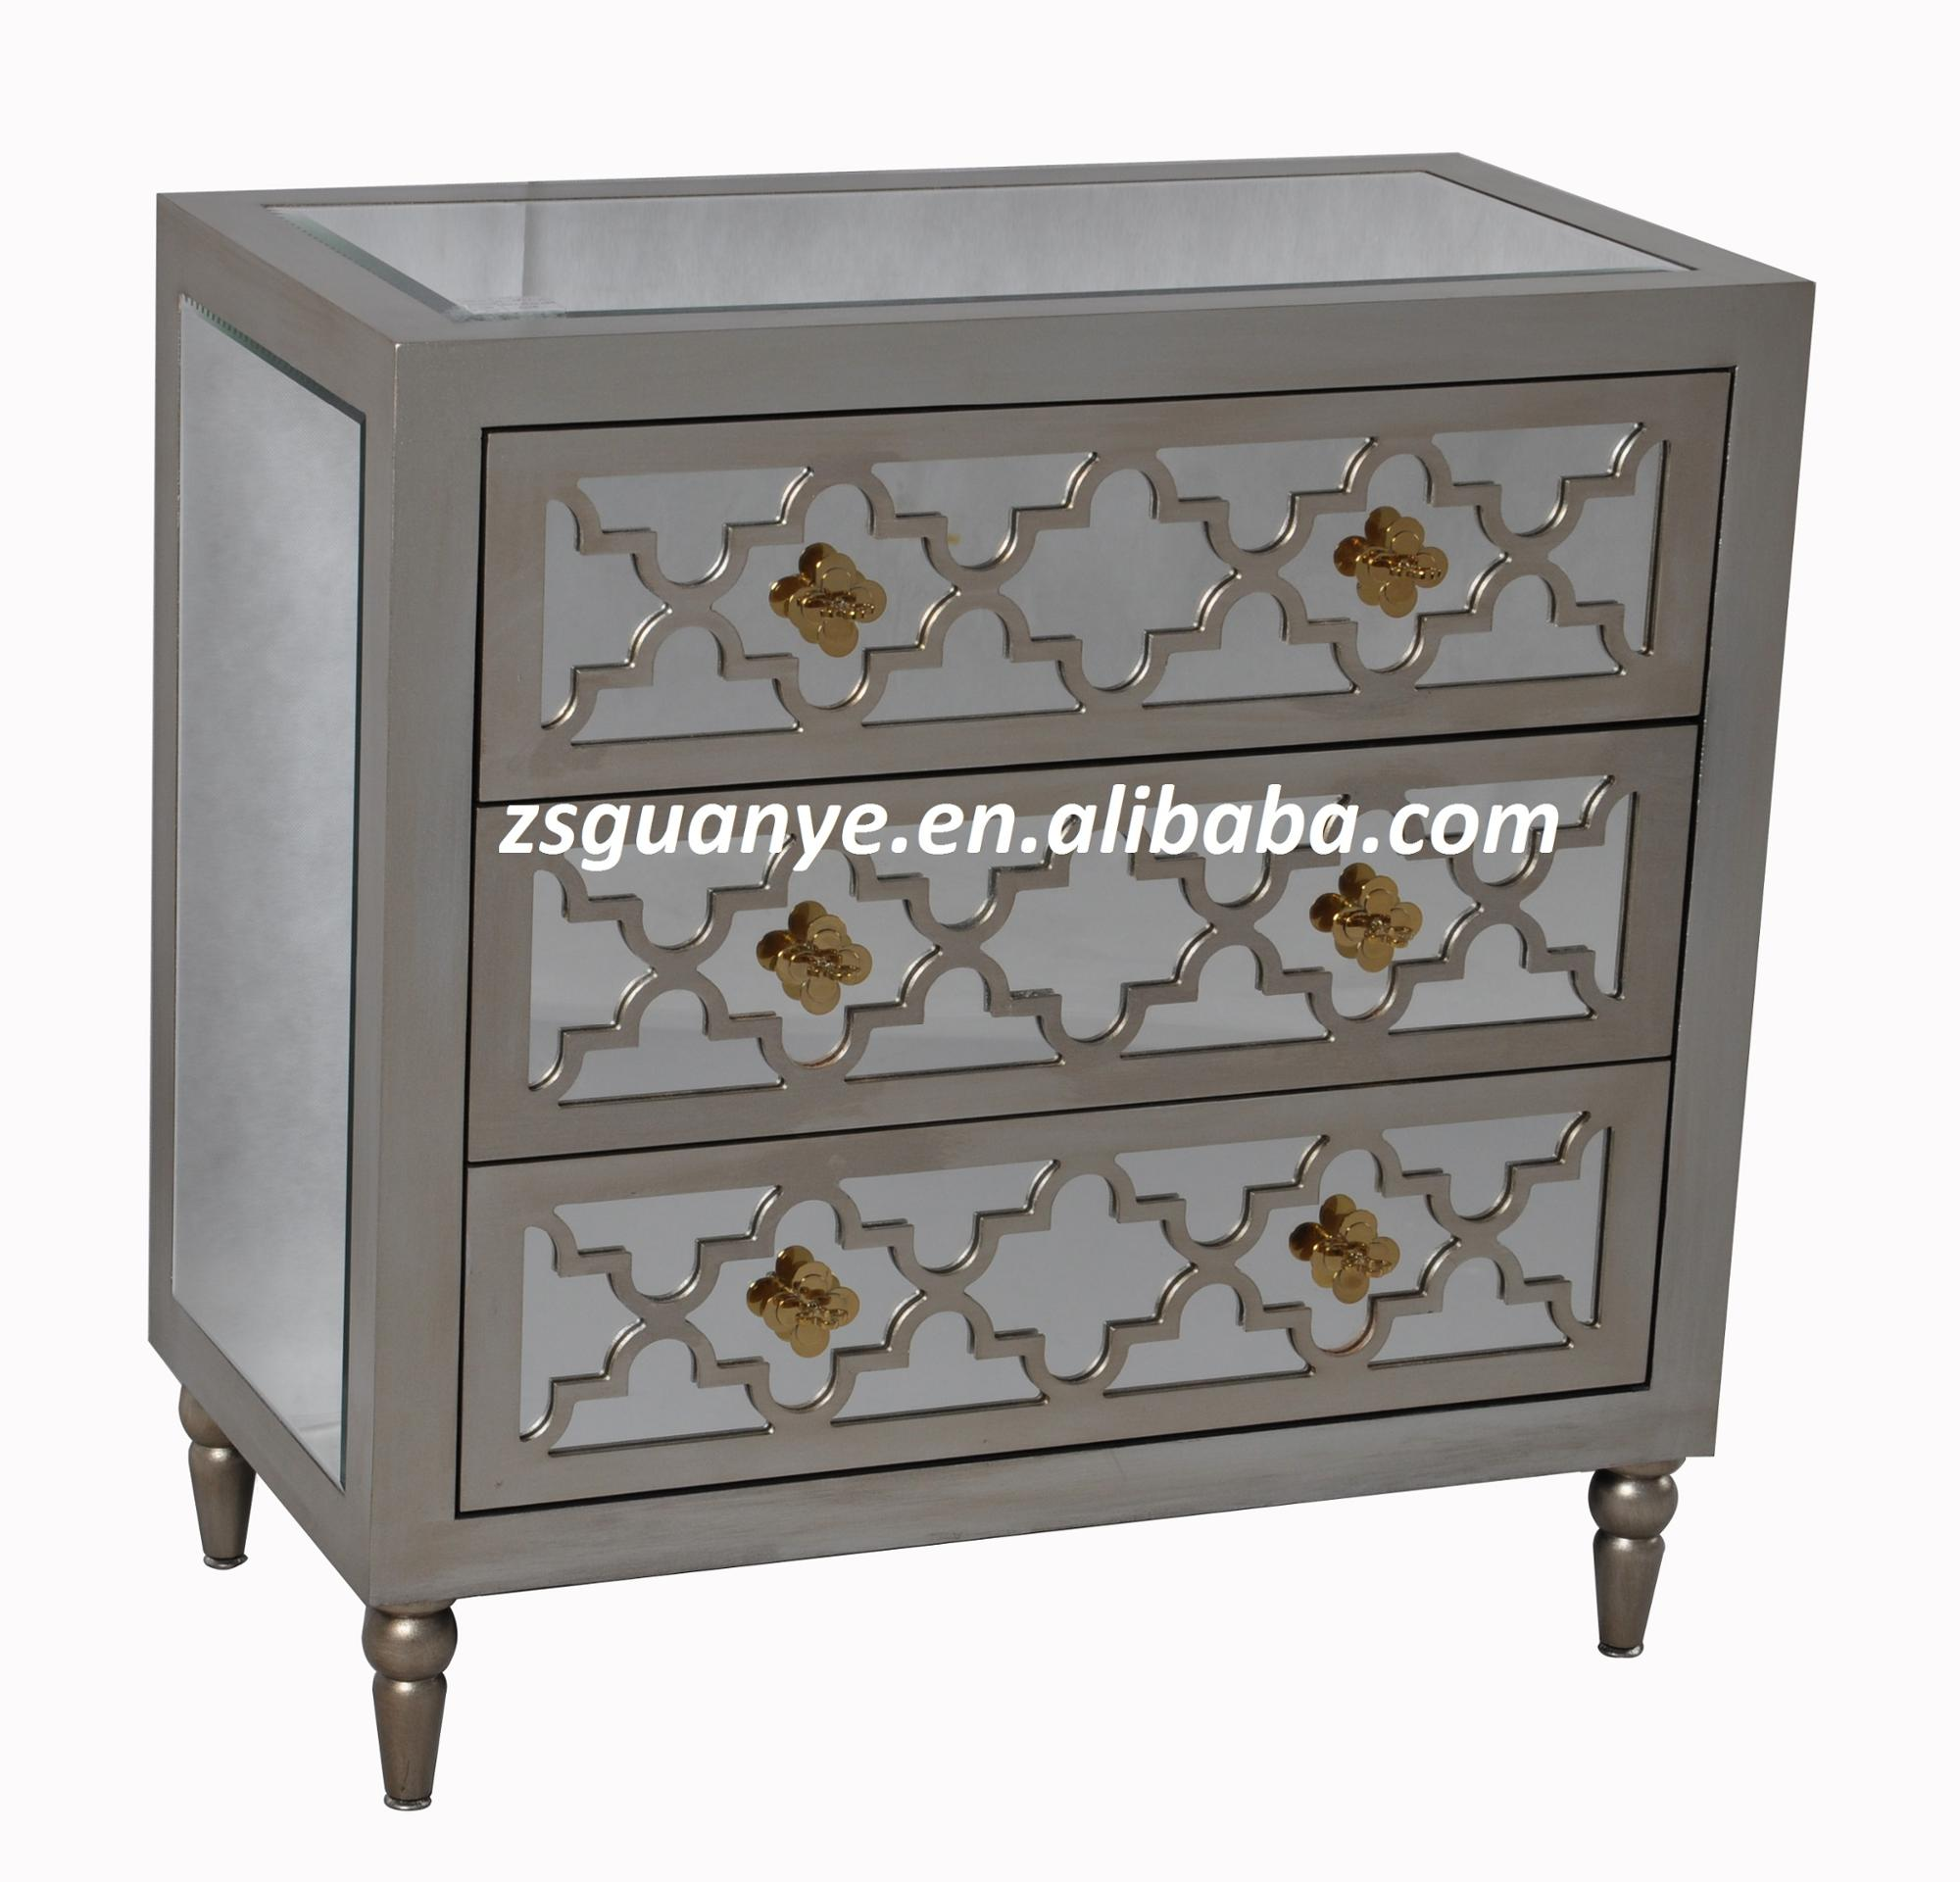 cabinet stor chests doors storage vanity accent latches for mirimyn and cabinets door metal legs white kitchen target inserts black one suppliers locks windham bayside house table